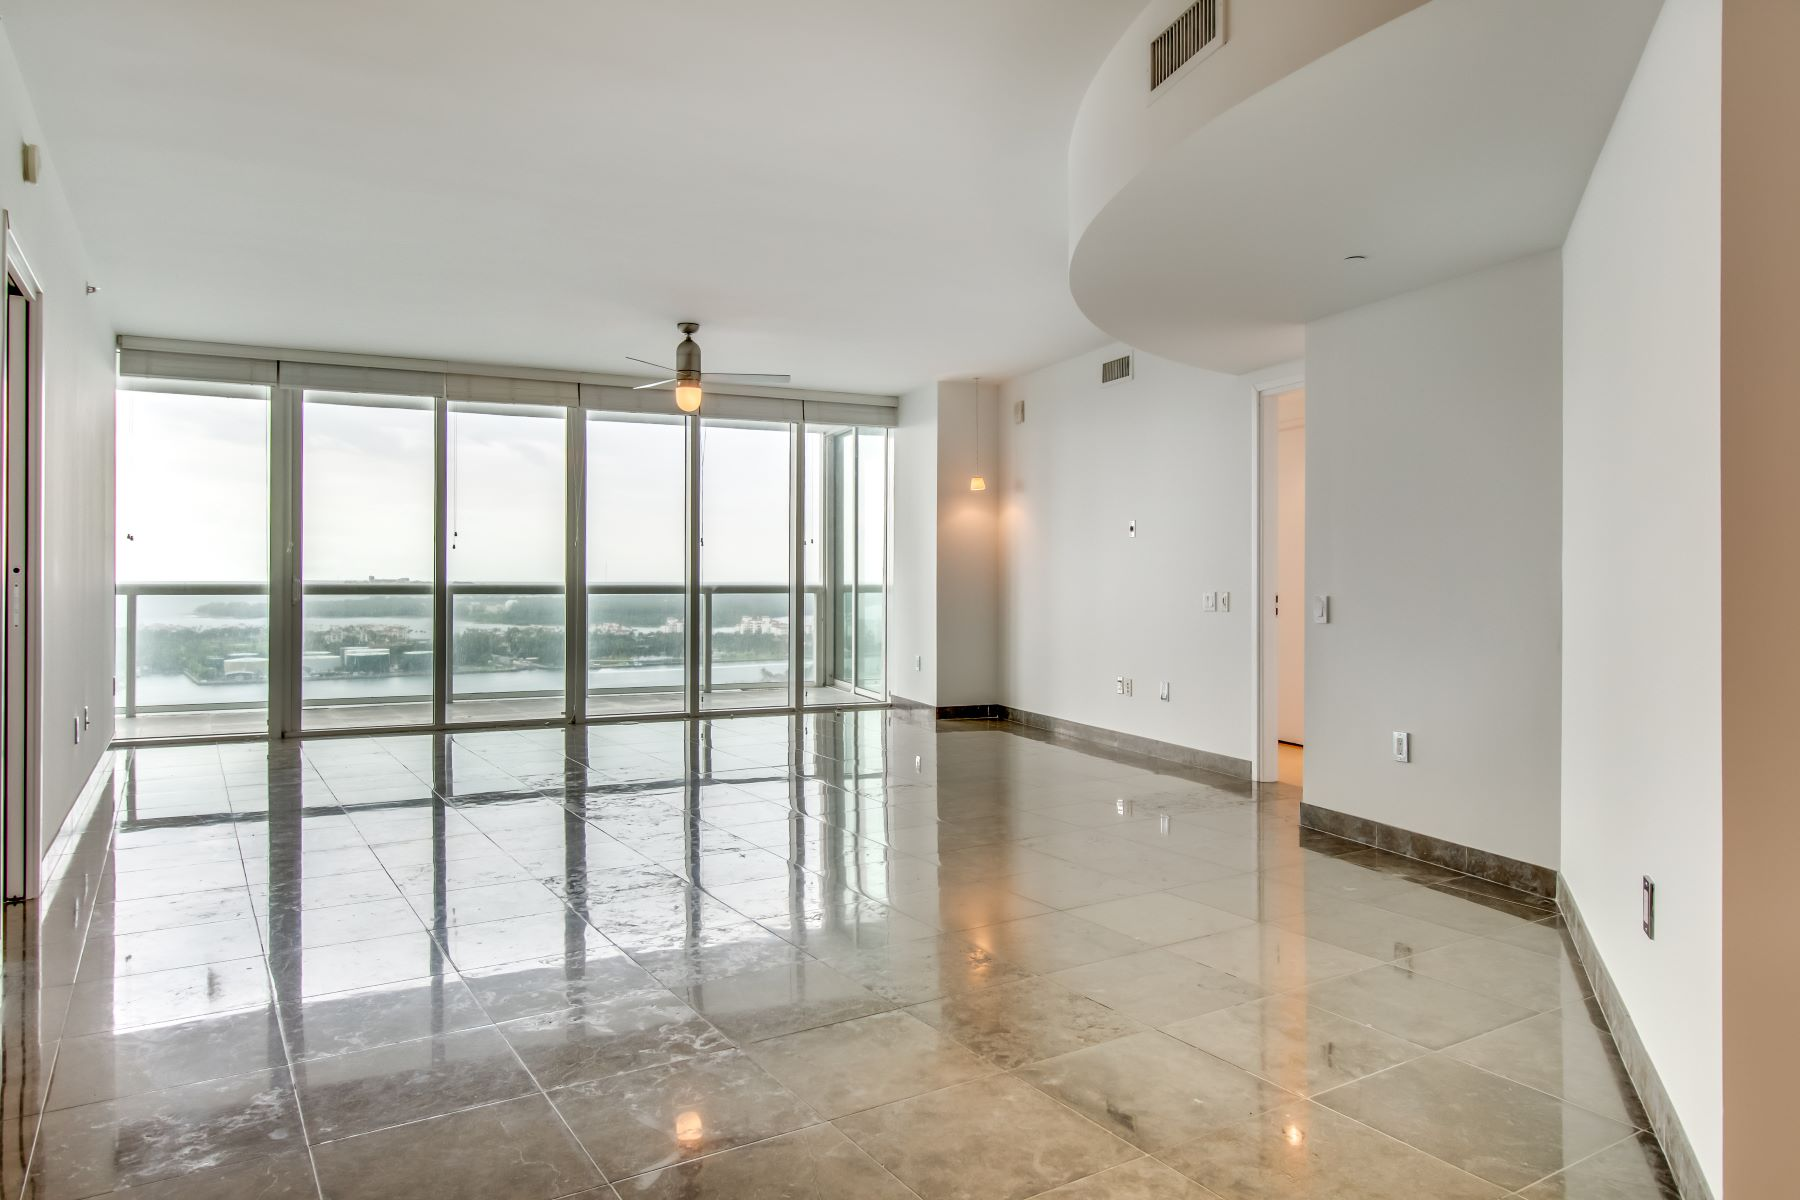 Condominium for Sale at 450 Alton Rd #2903 450 Alton Rd 2903 Miami Beach, Florida, 33139 United States